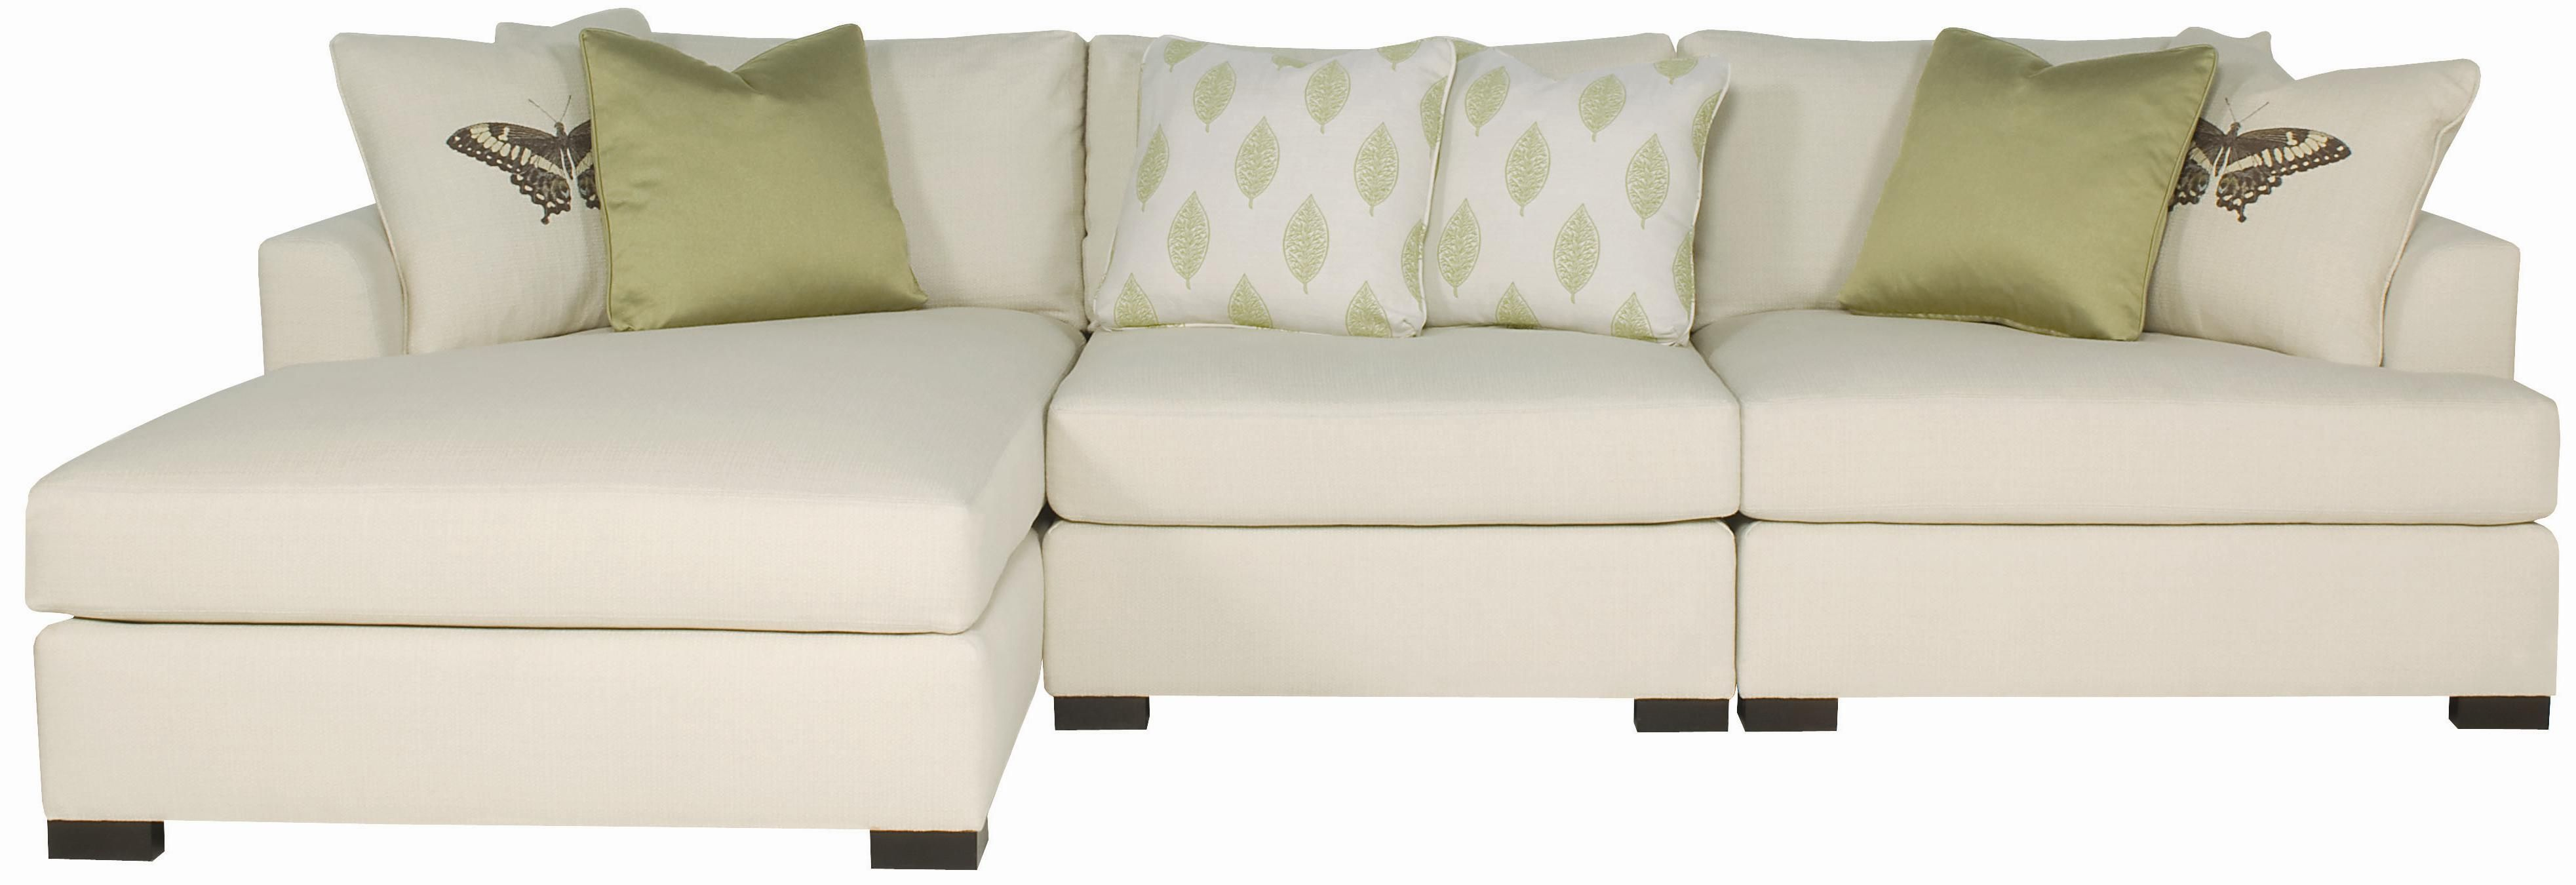 Adriana Sectional Sofa With Chaise Lounger By Bernhardt